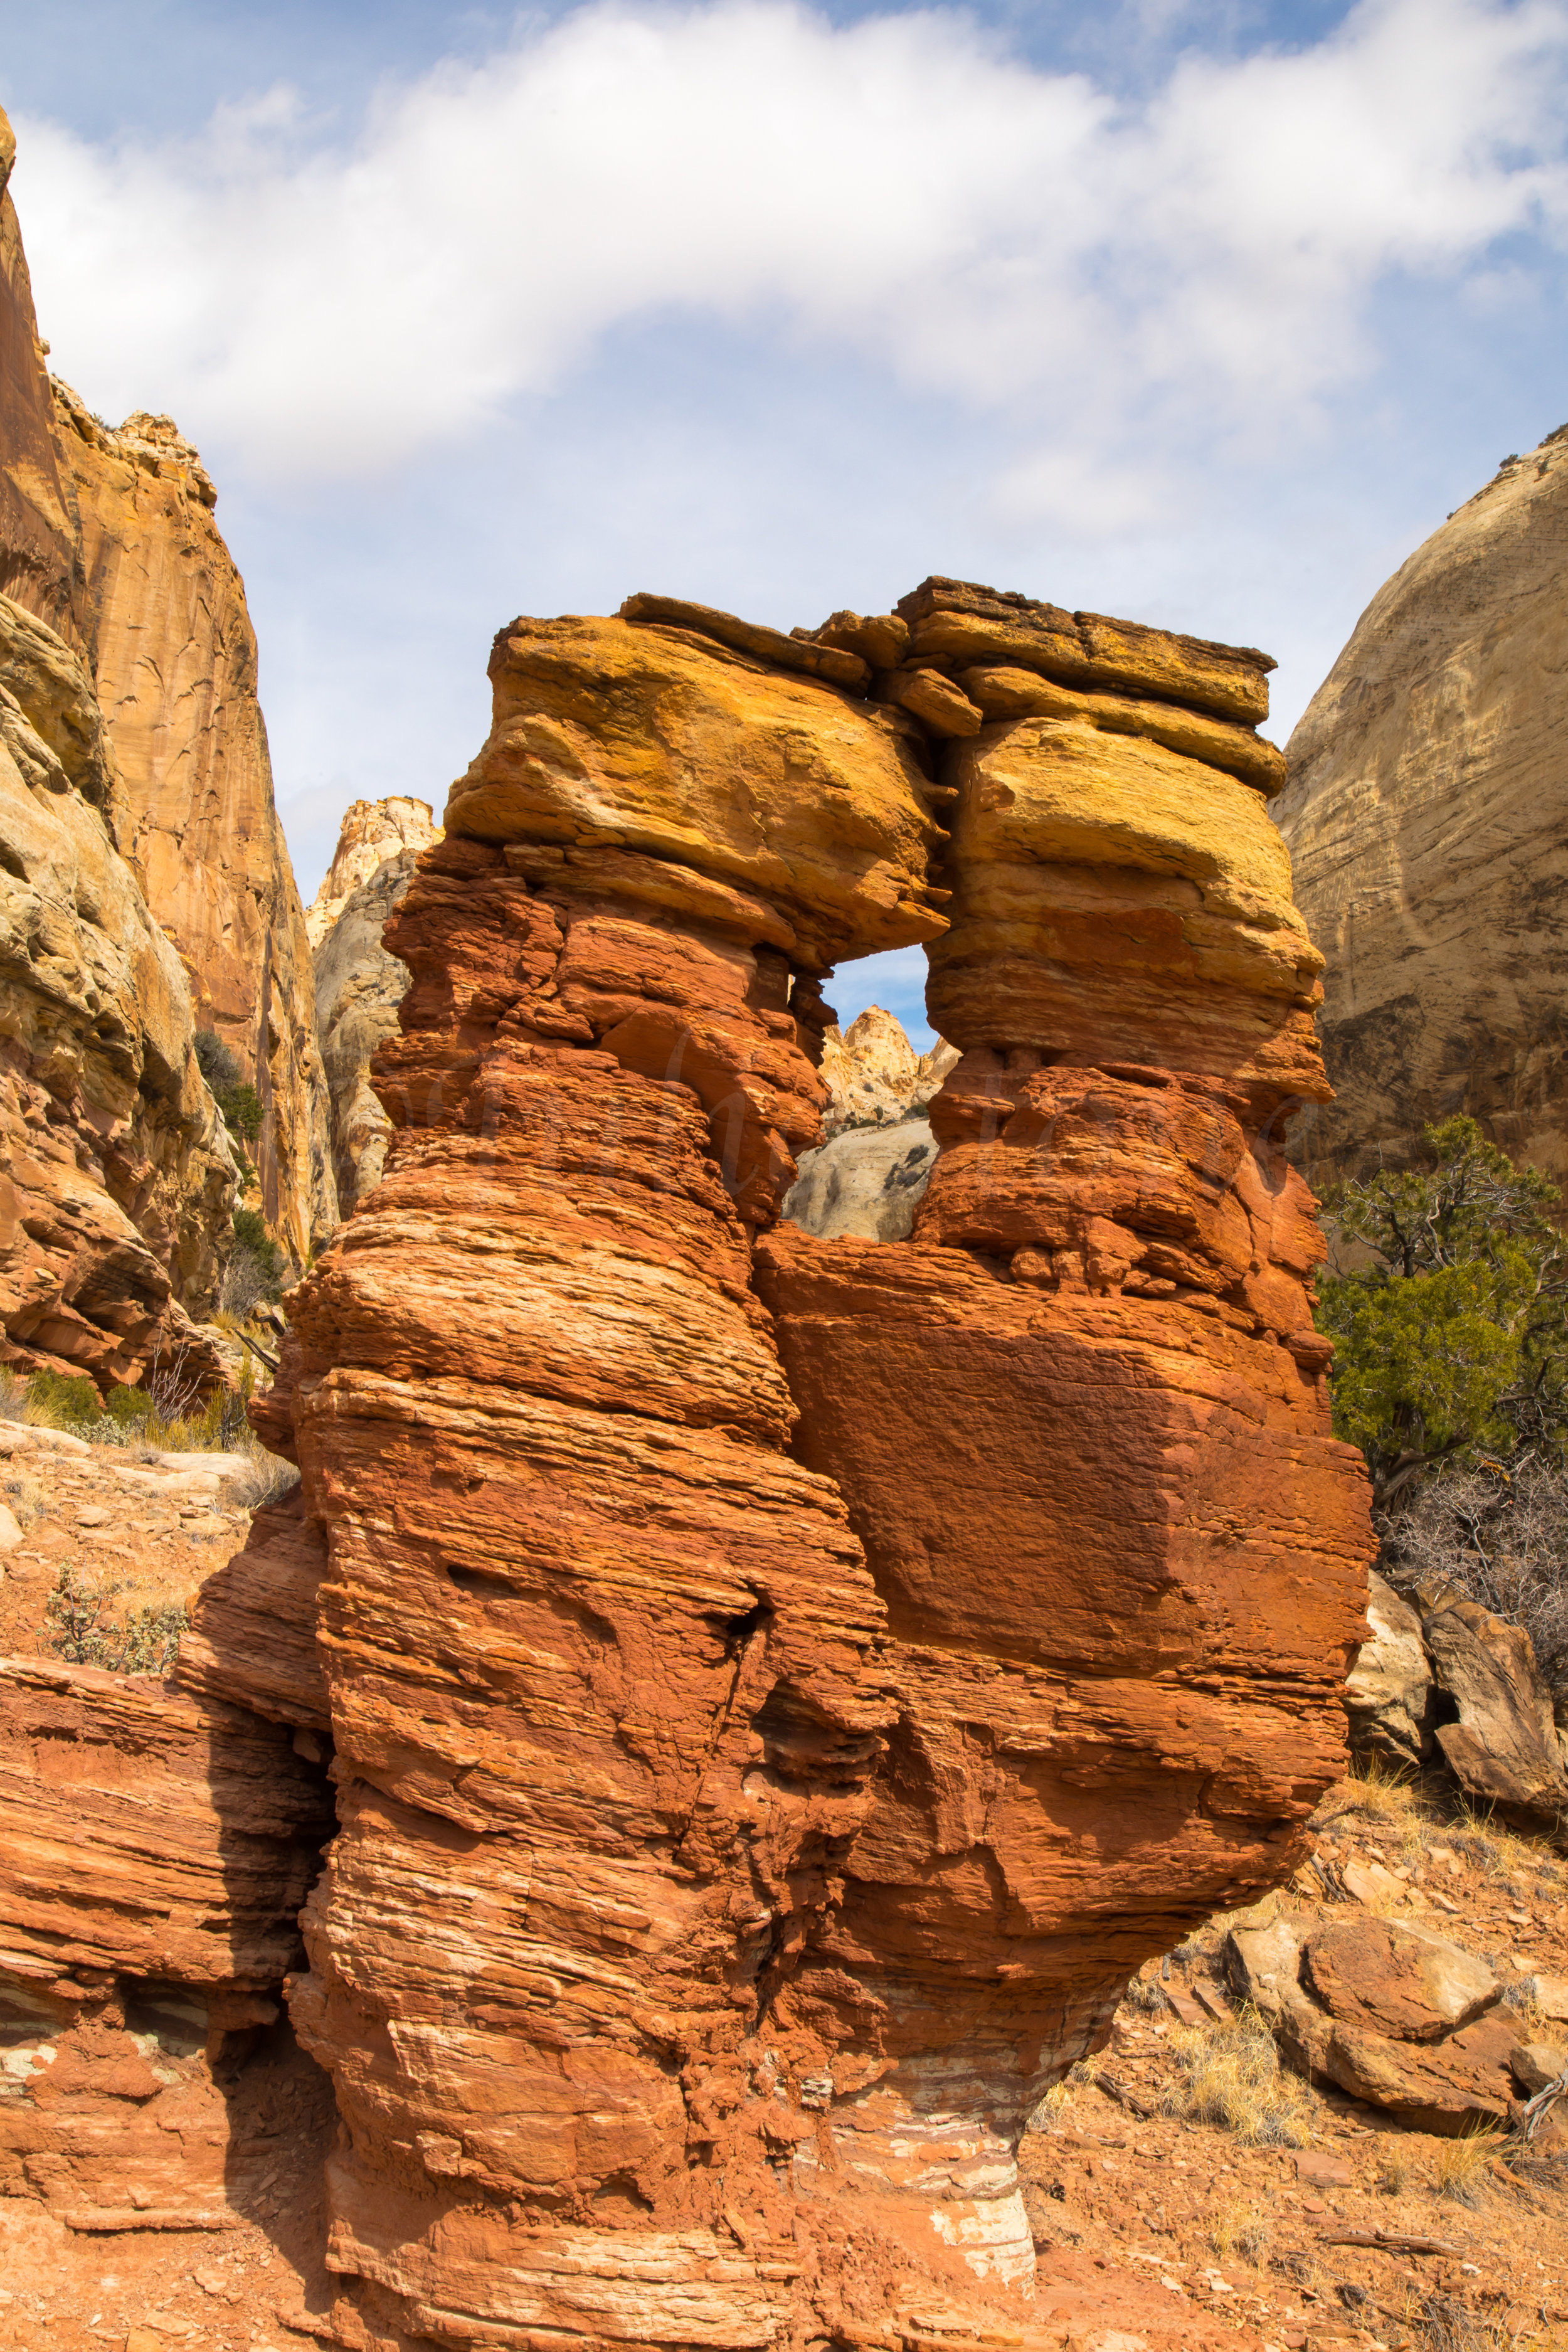 Capitol Reef National Park, Image # 0910